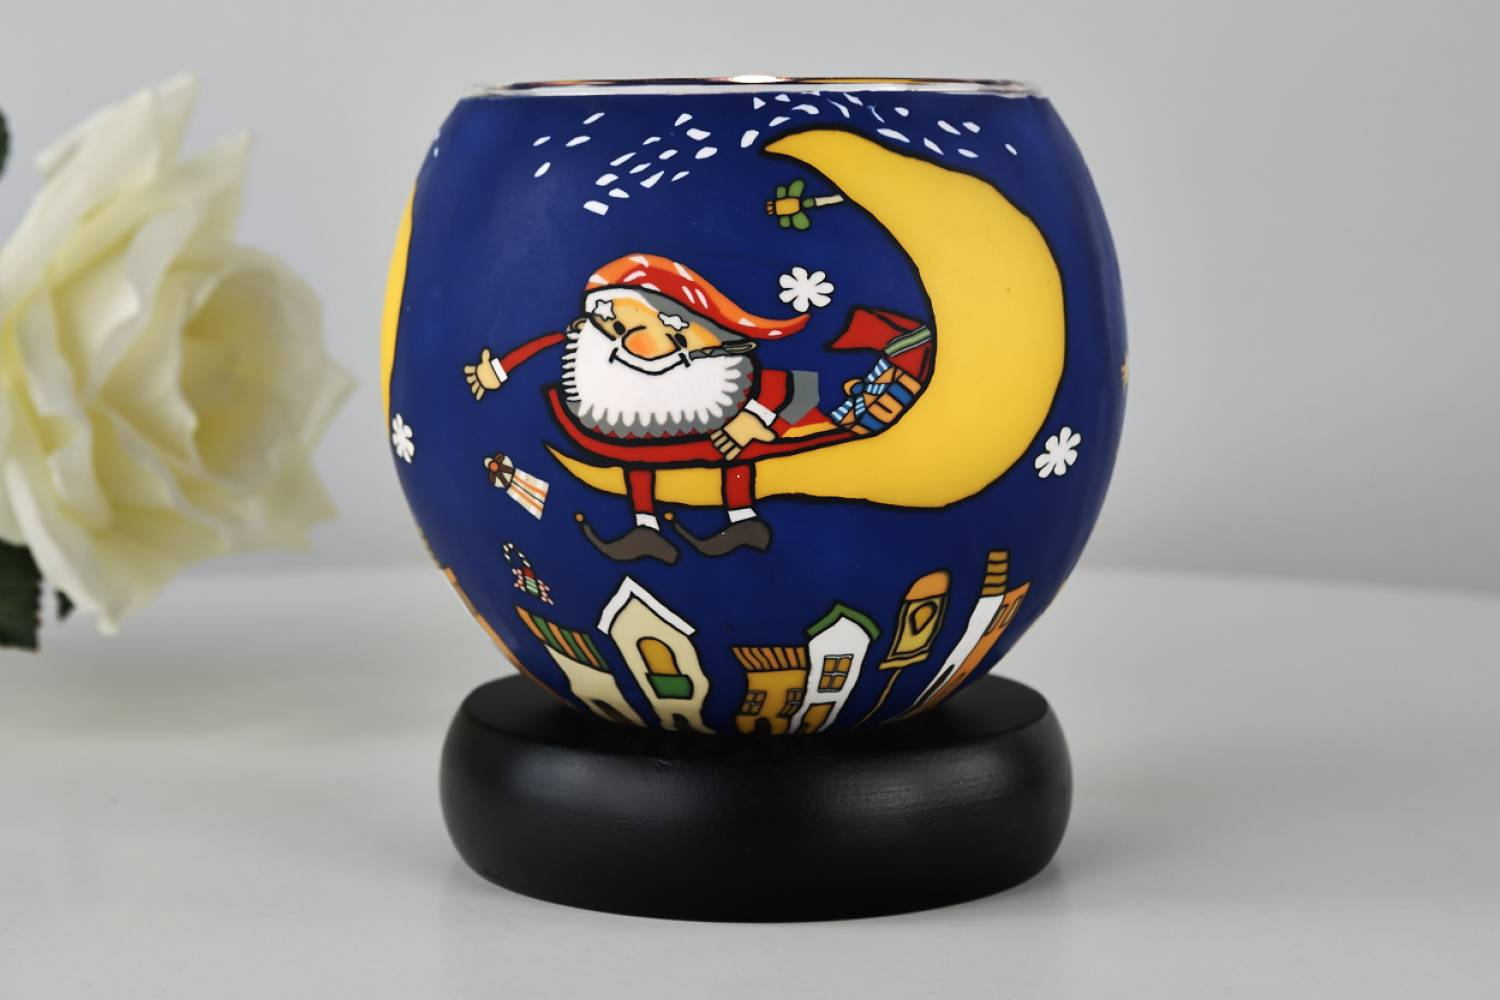 Leuchtglas Lampe Kerzenfarm 21824 Santa on the moon Ø11cm Windlicht Dekoleuchte